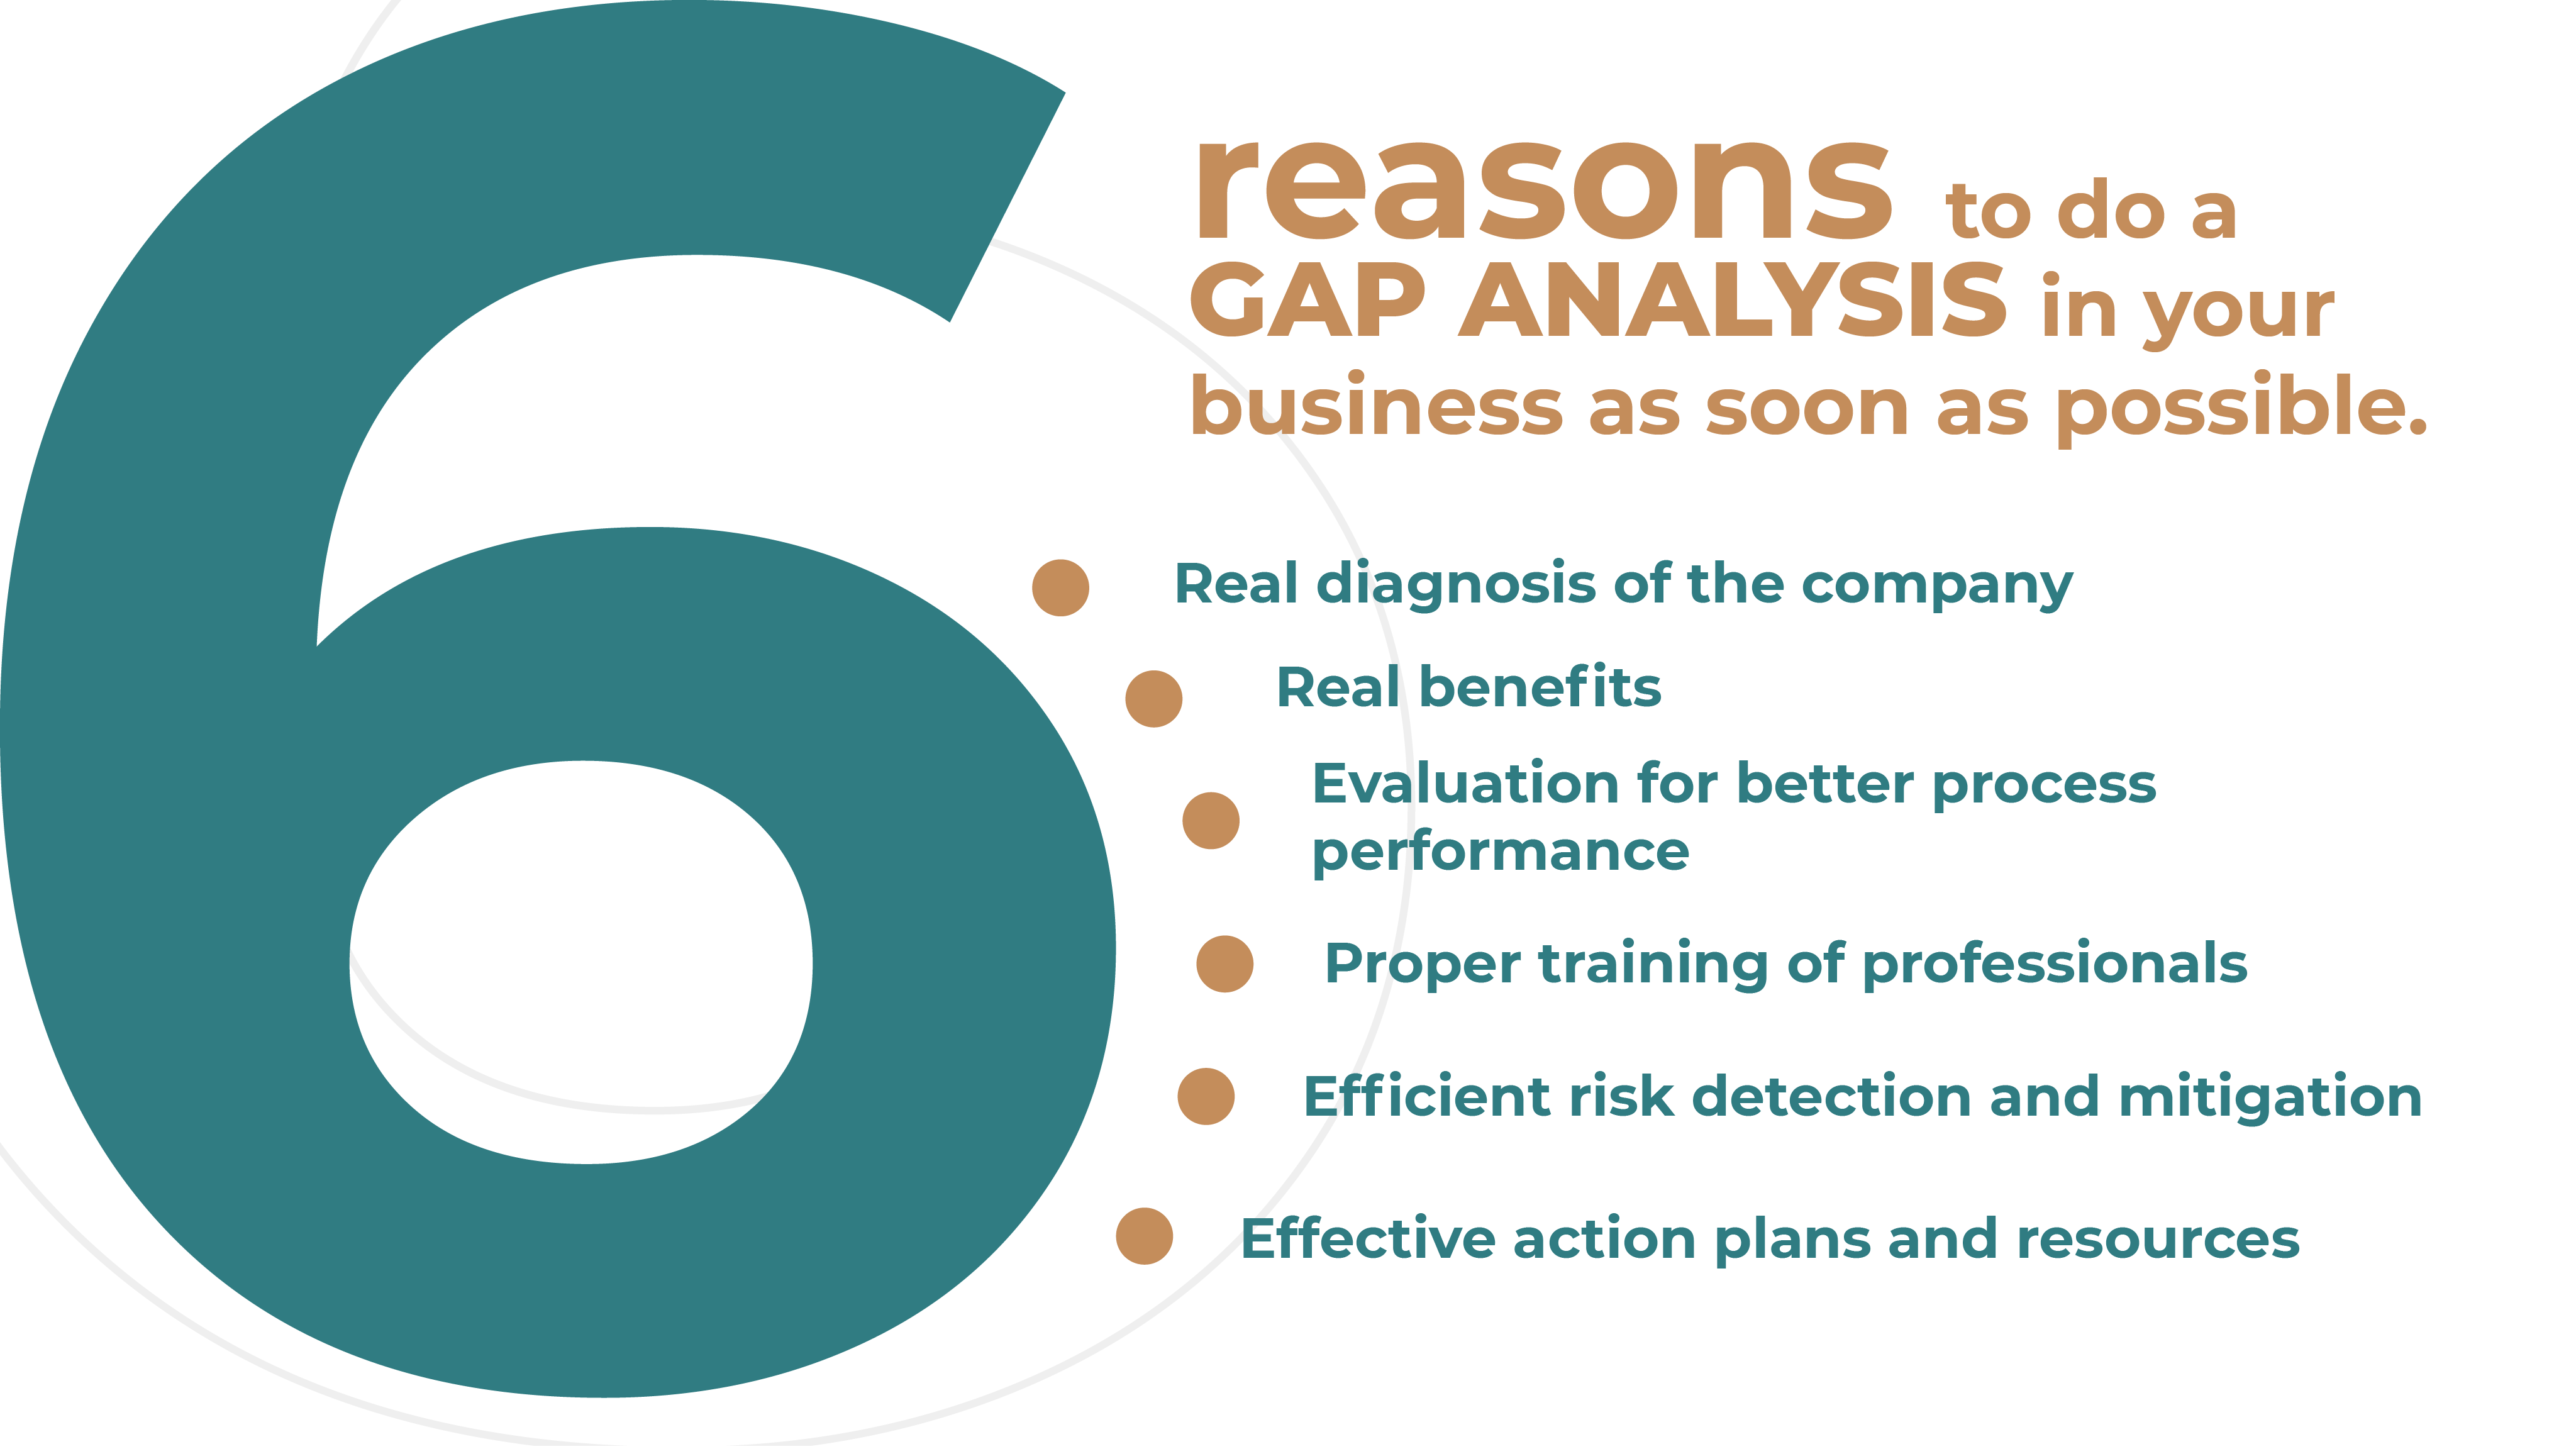 6 Reasons to make a GAP ANALYSIS to your business as soon as possible